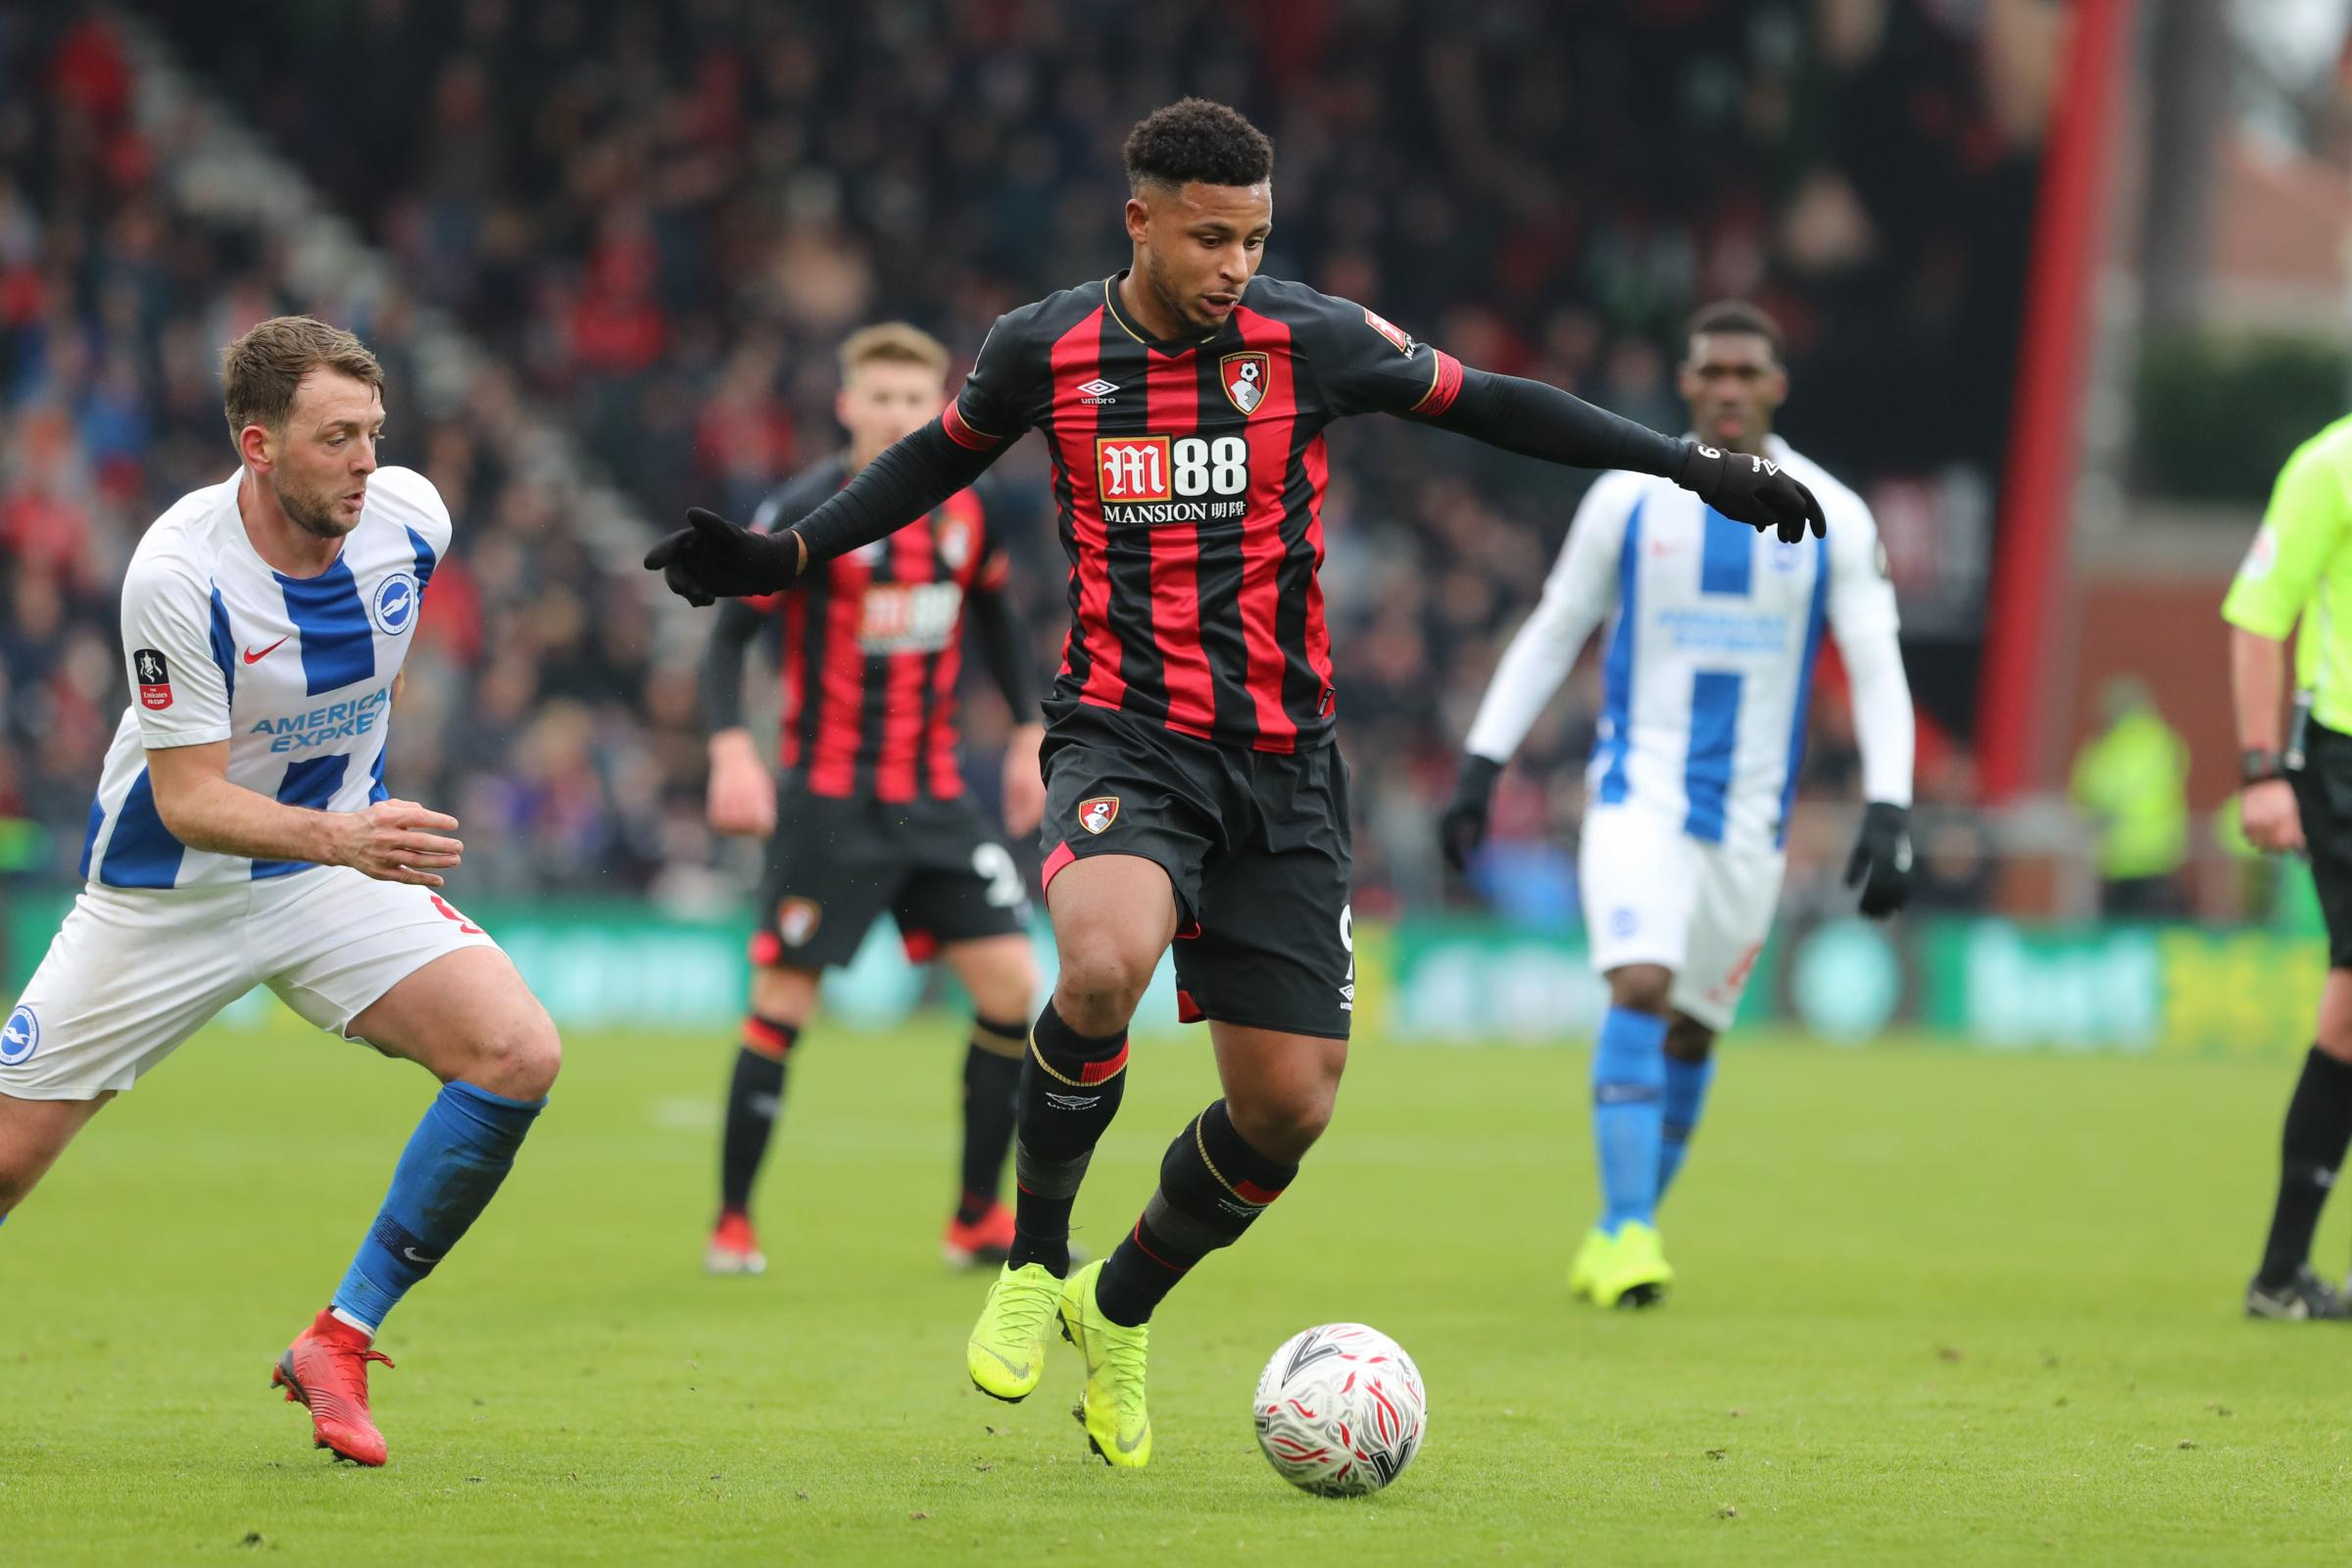 Striker Lys Mousset confirms move to Sheffield United from AFC Bournemouth